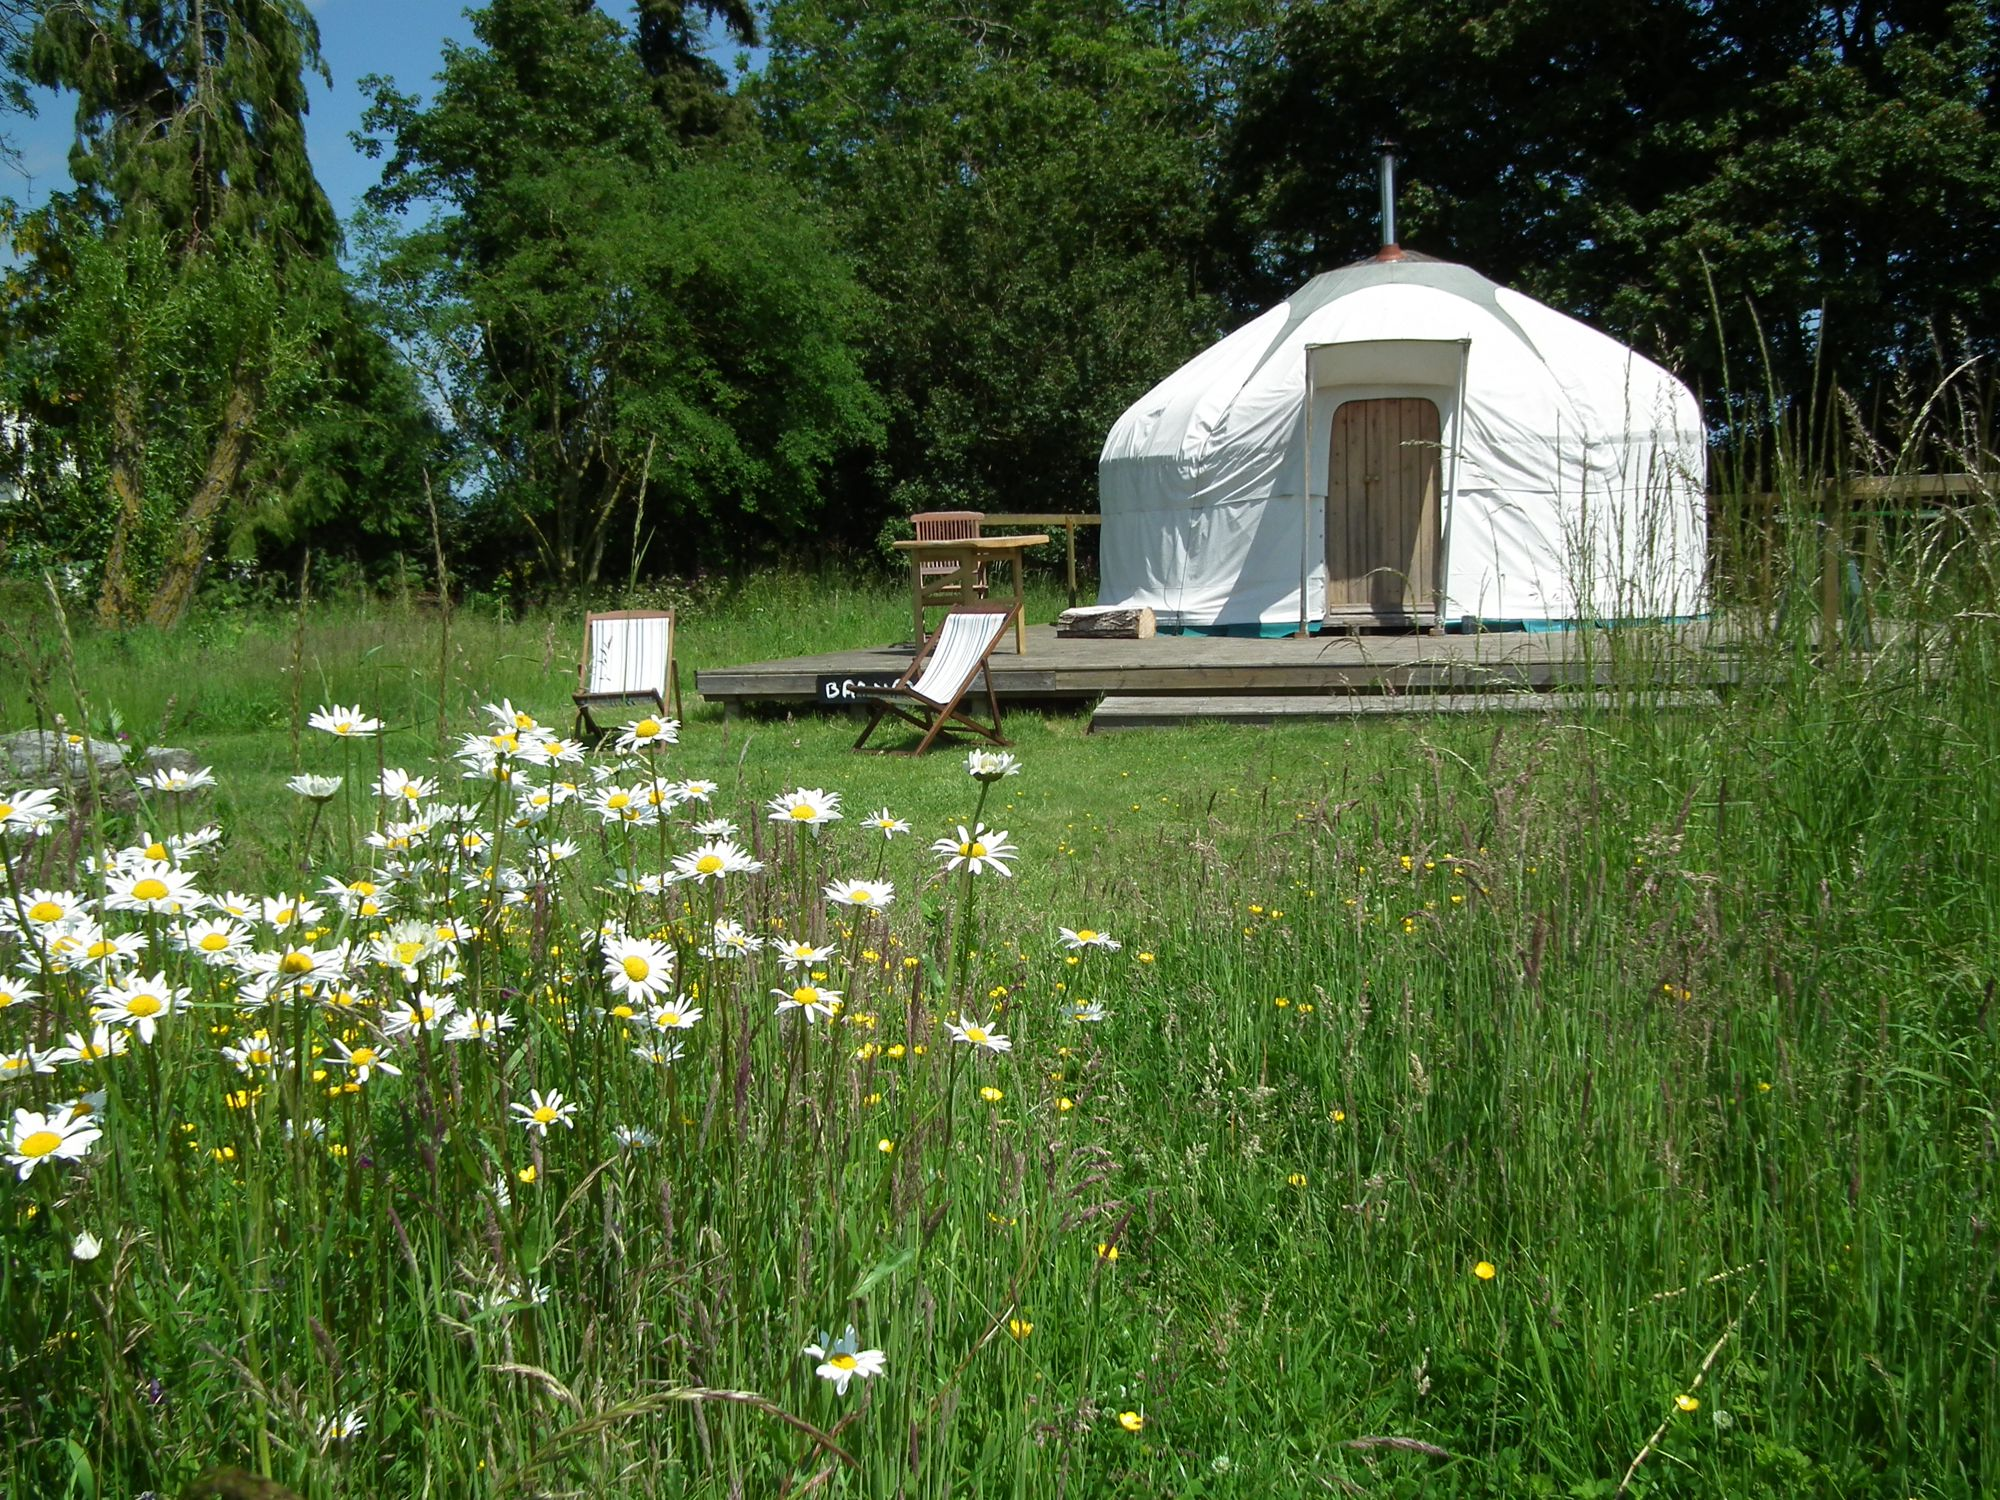 Peace and tranquility in the Suffolk countryside, but also plenty to do on this charming glamping site.